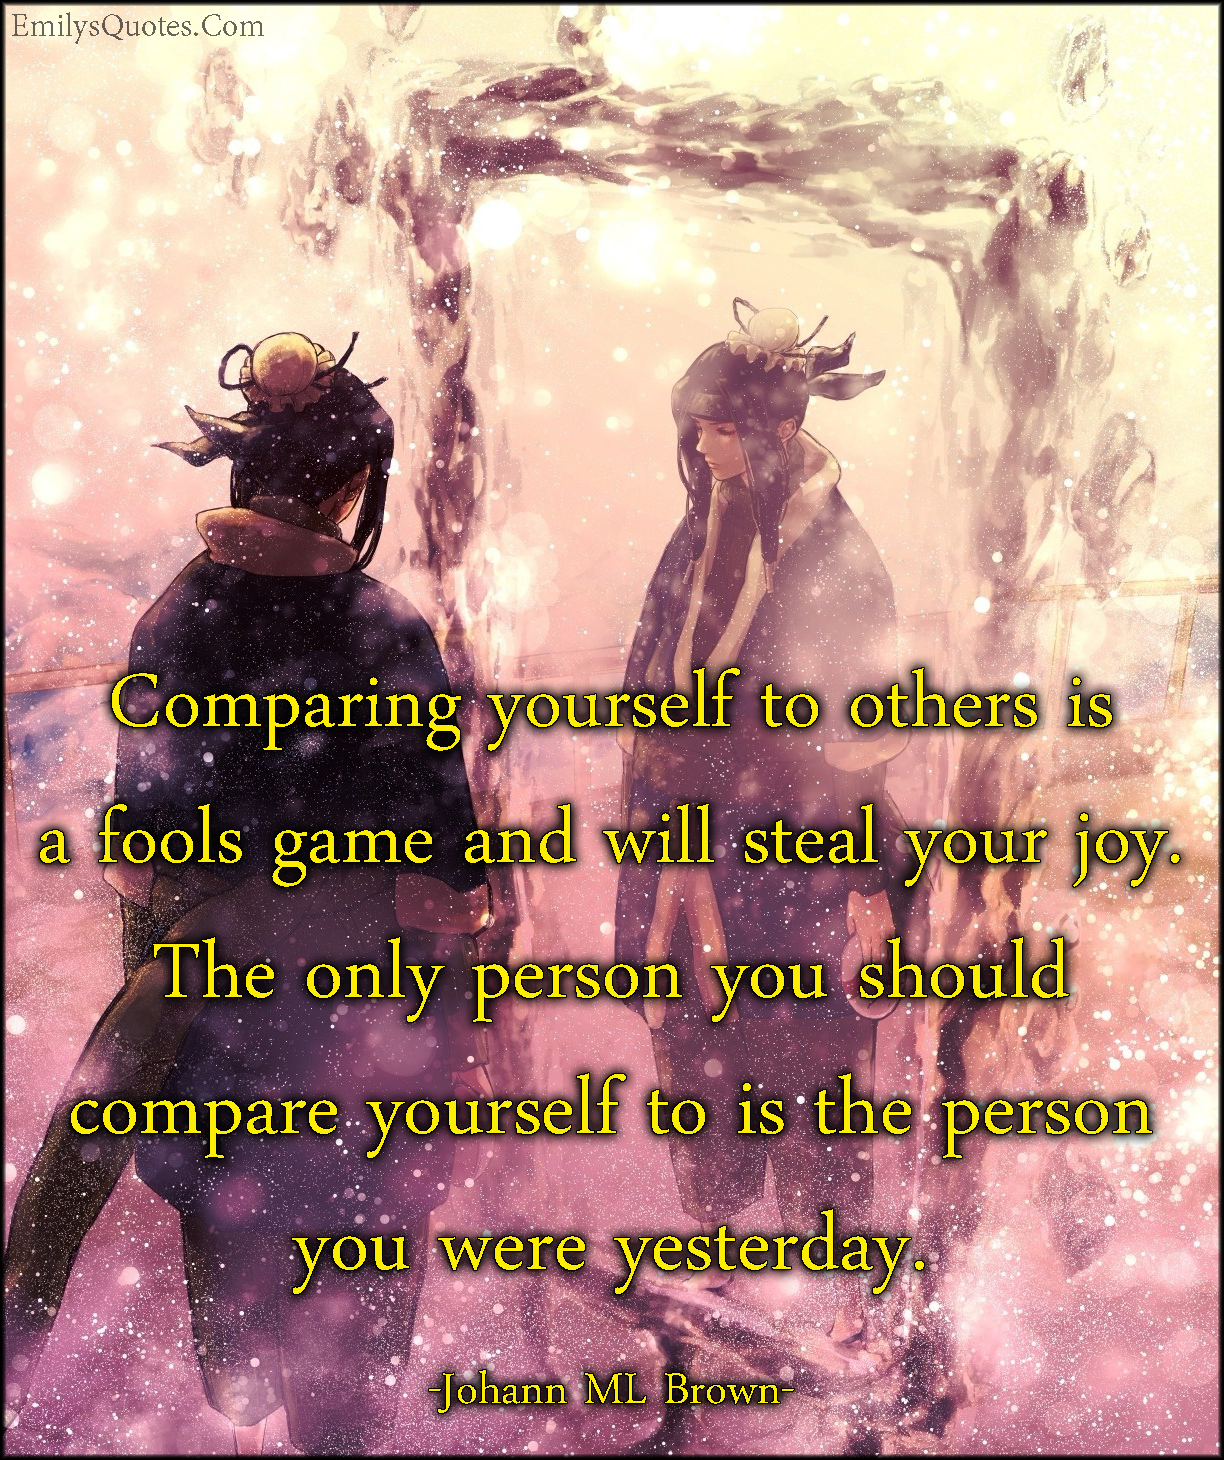 EmilysQuotes.Com - comparing, fools game, steal, joy, compare, yourself, past, yesterday, advice, consequences, inspirational, Johann ML Brown